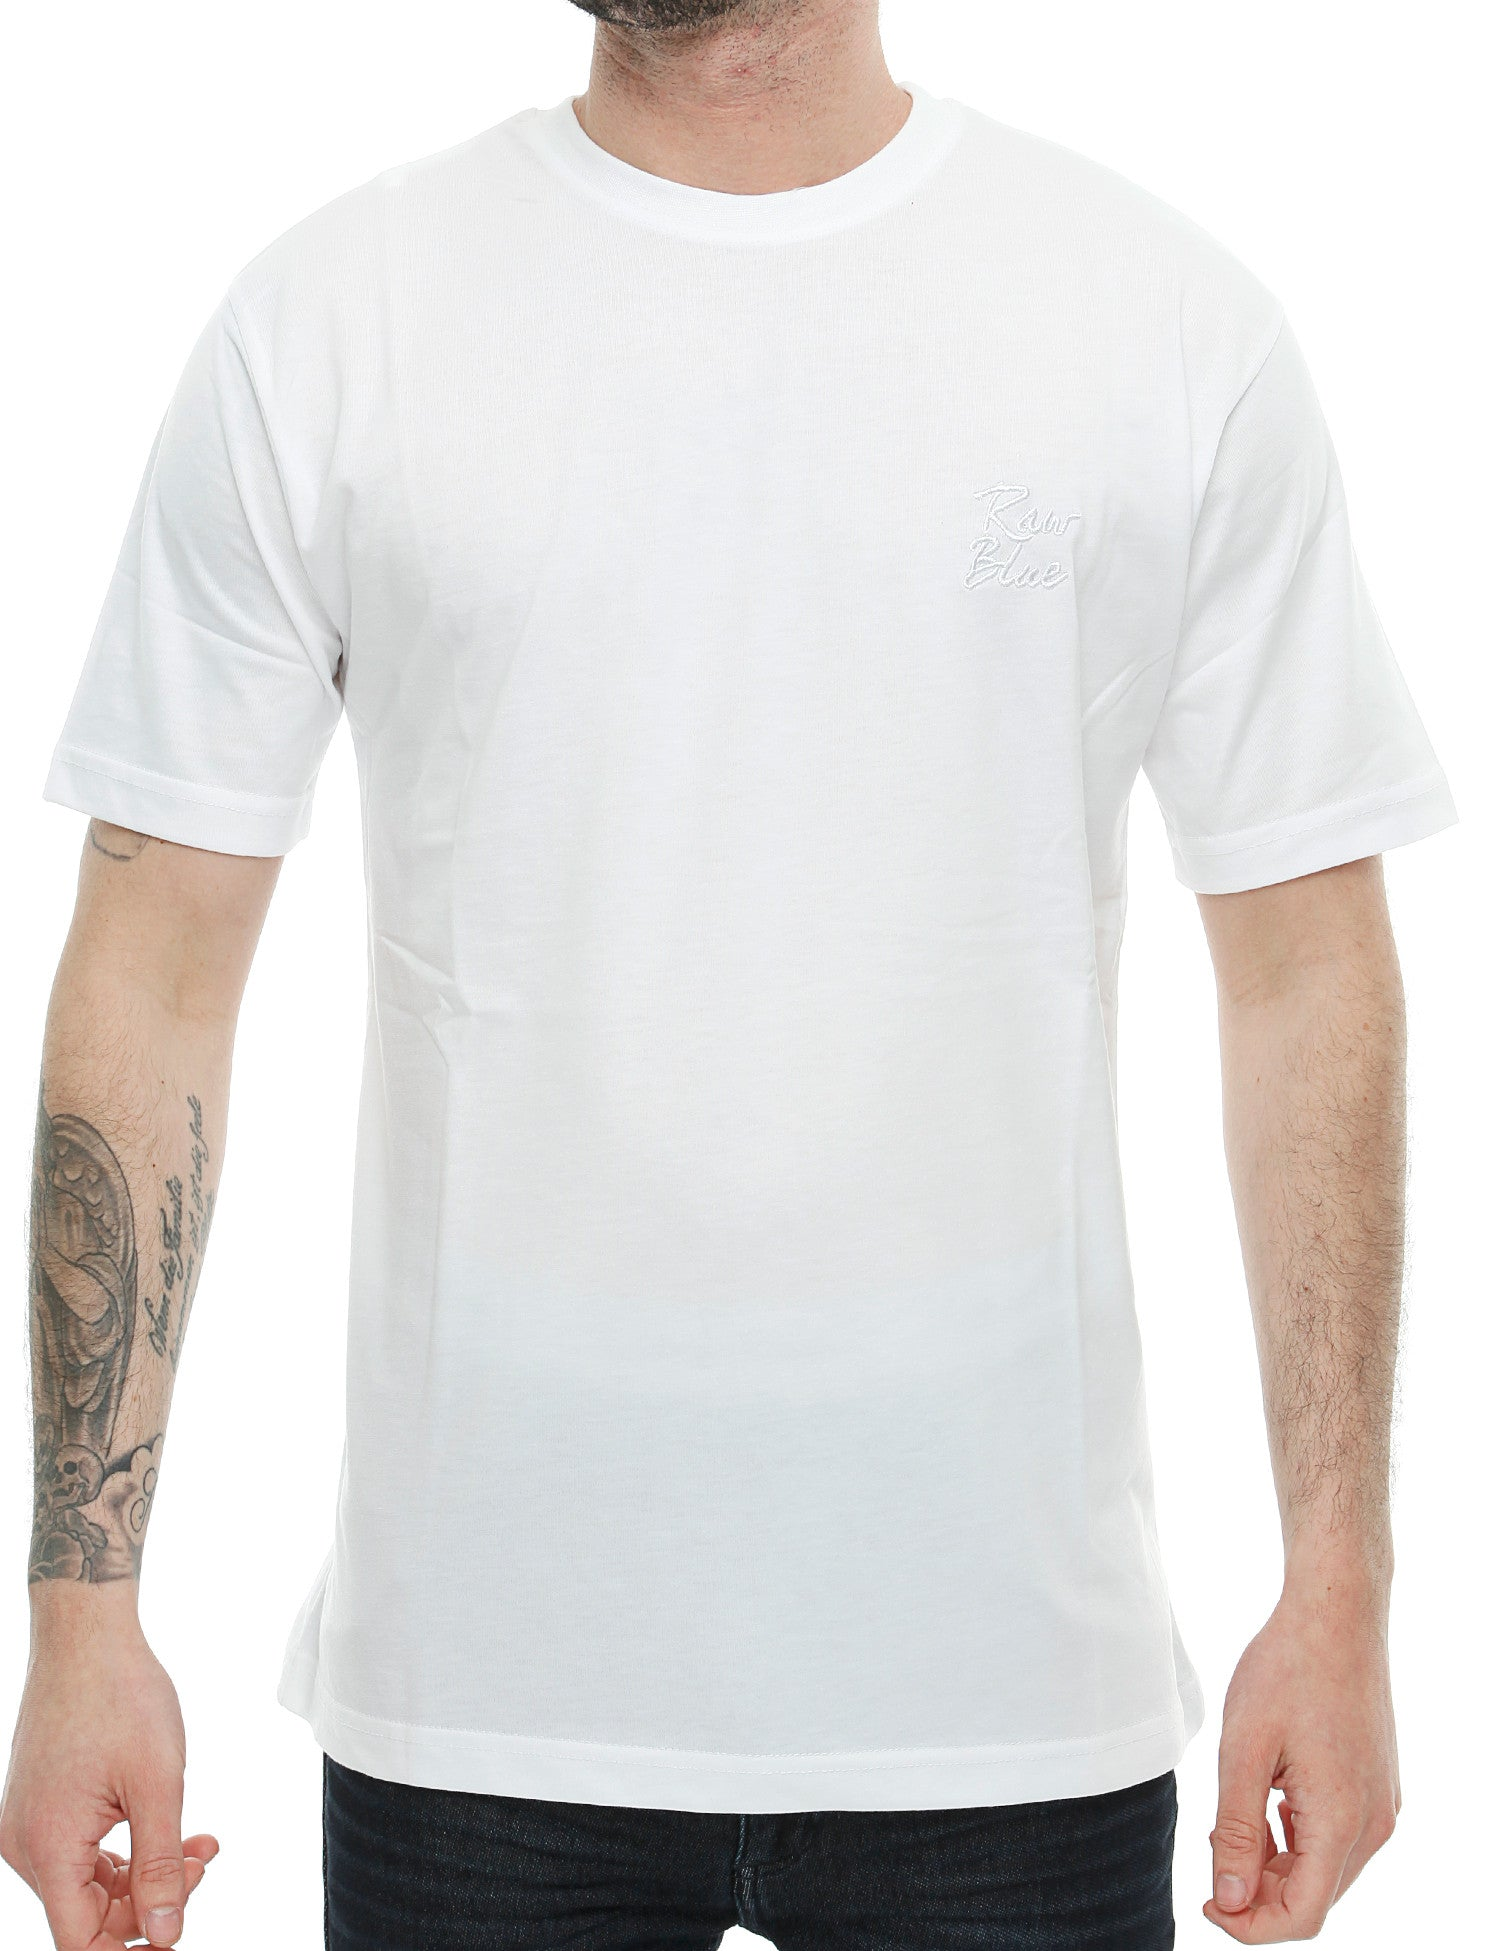 Raw Blue Basic Emb T-Shirt RB16-014 White